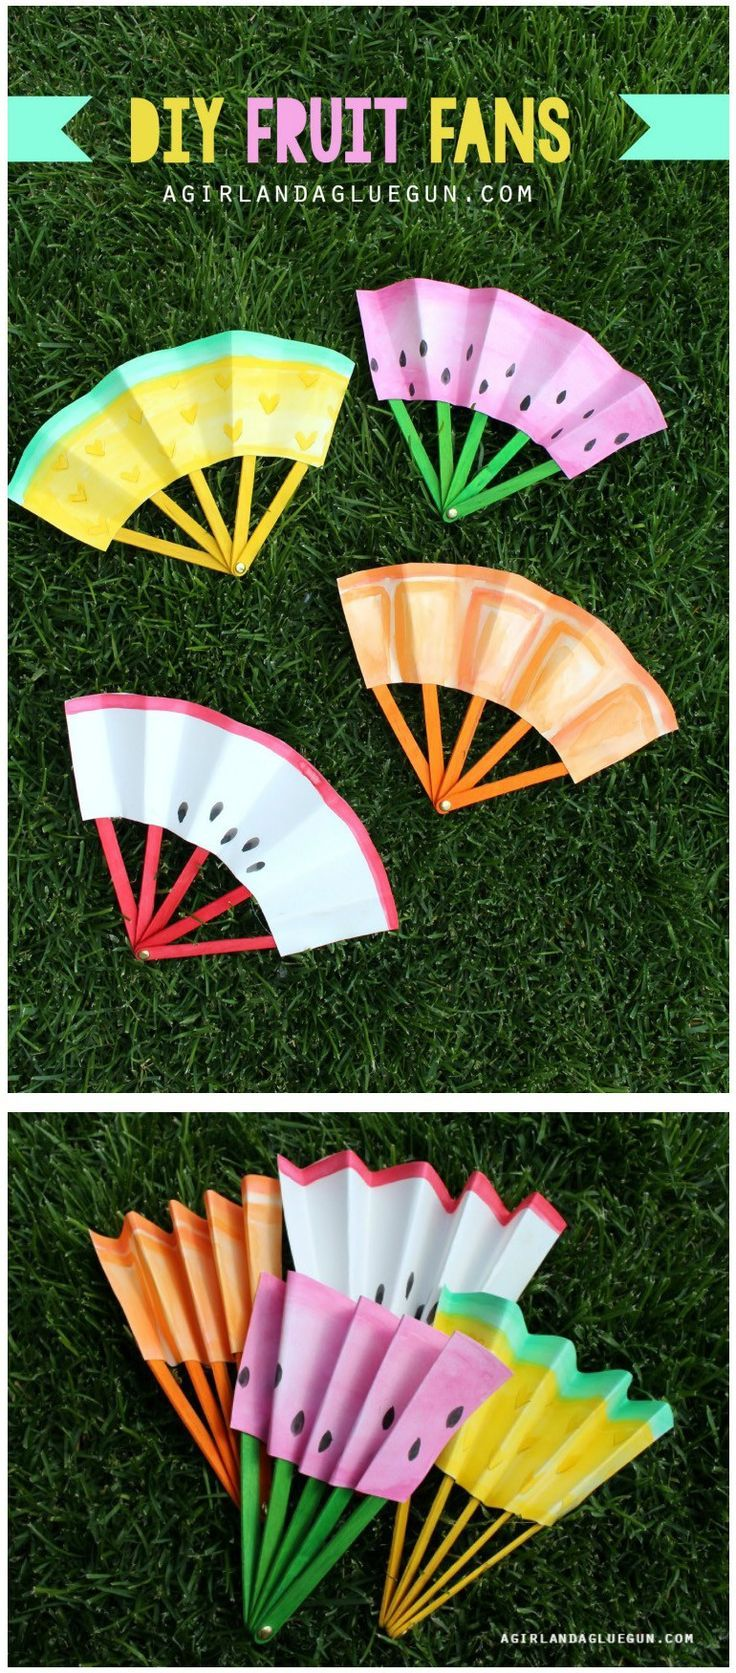 DIY Fruit Fans—perfect for cooling down on a hot day!